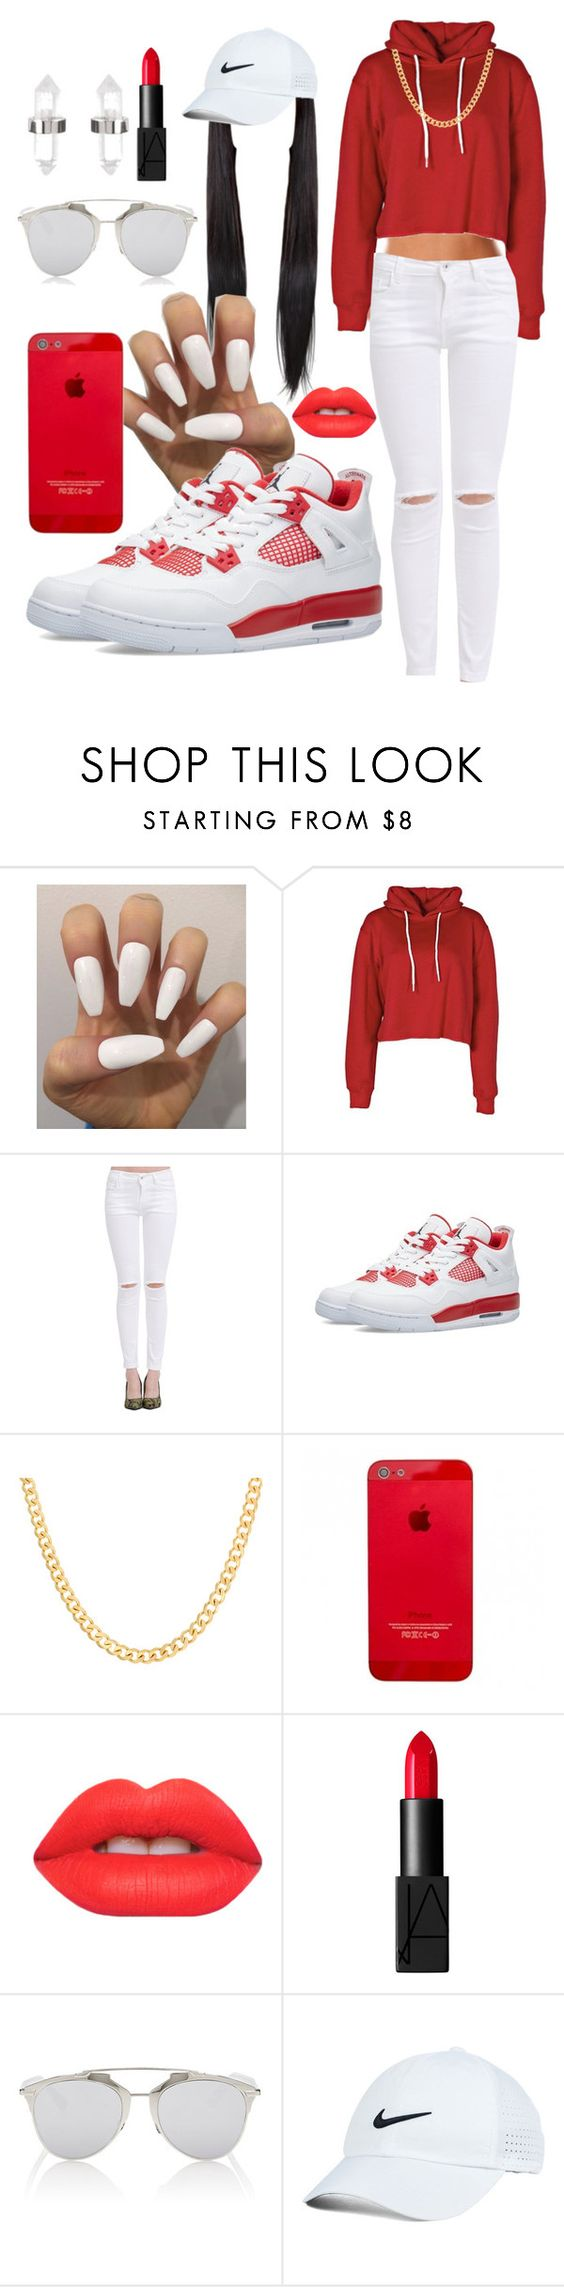 """""""Untitled #217"""" by dianablvck ❤ liked on Polyvore featuring Boohoo, Sterling Essentials, Lime Crime, NARS Cosmetics, Christian Dior, Nike Golf, Amber Sceats, women's clothing, women's fashion and women"""